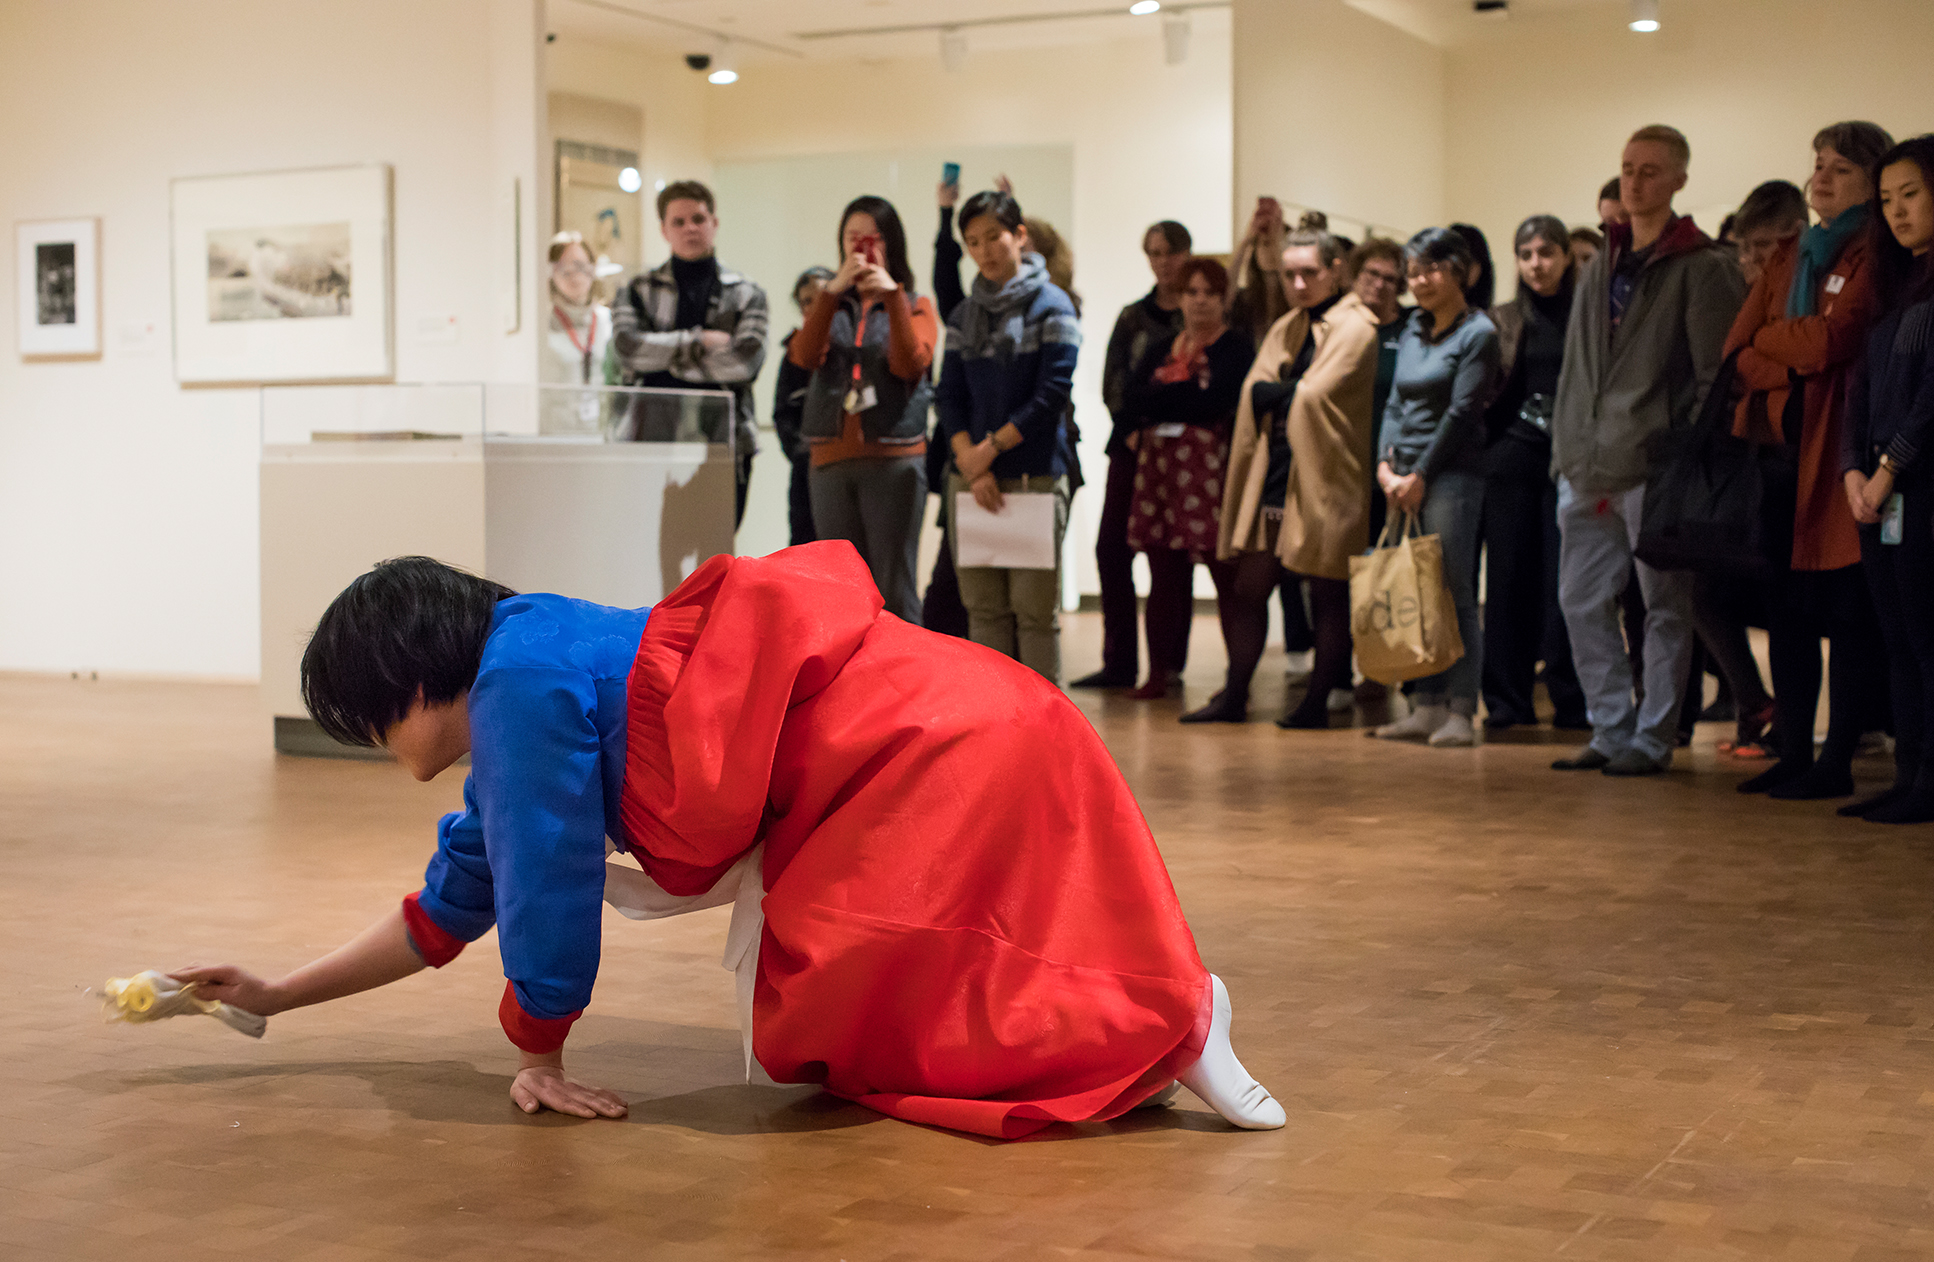 Artist Mina Cheon performance in galleries as part of the North Korean Awareness and Global Peace Projects